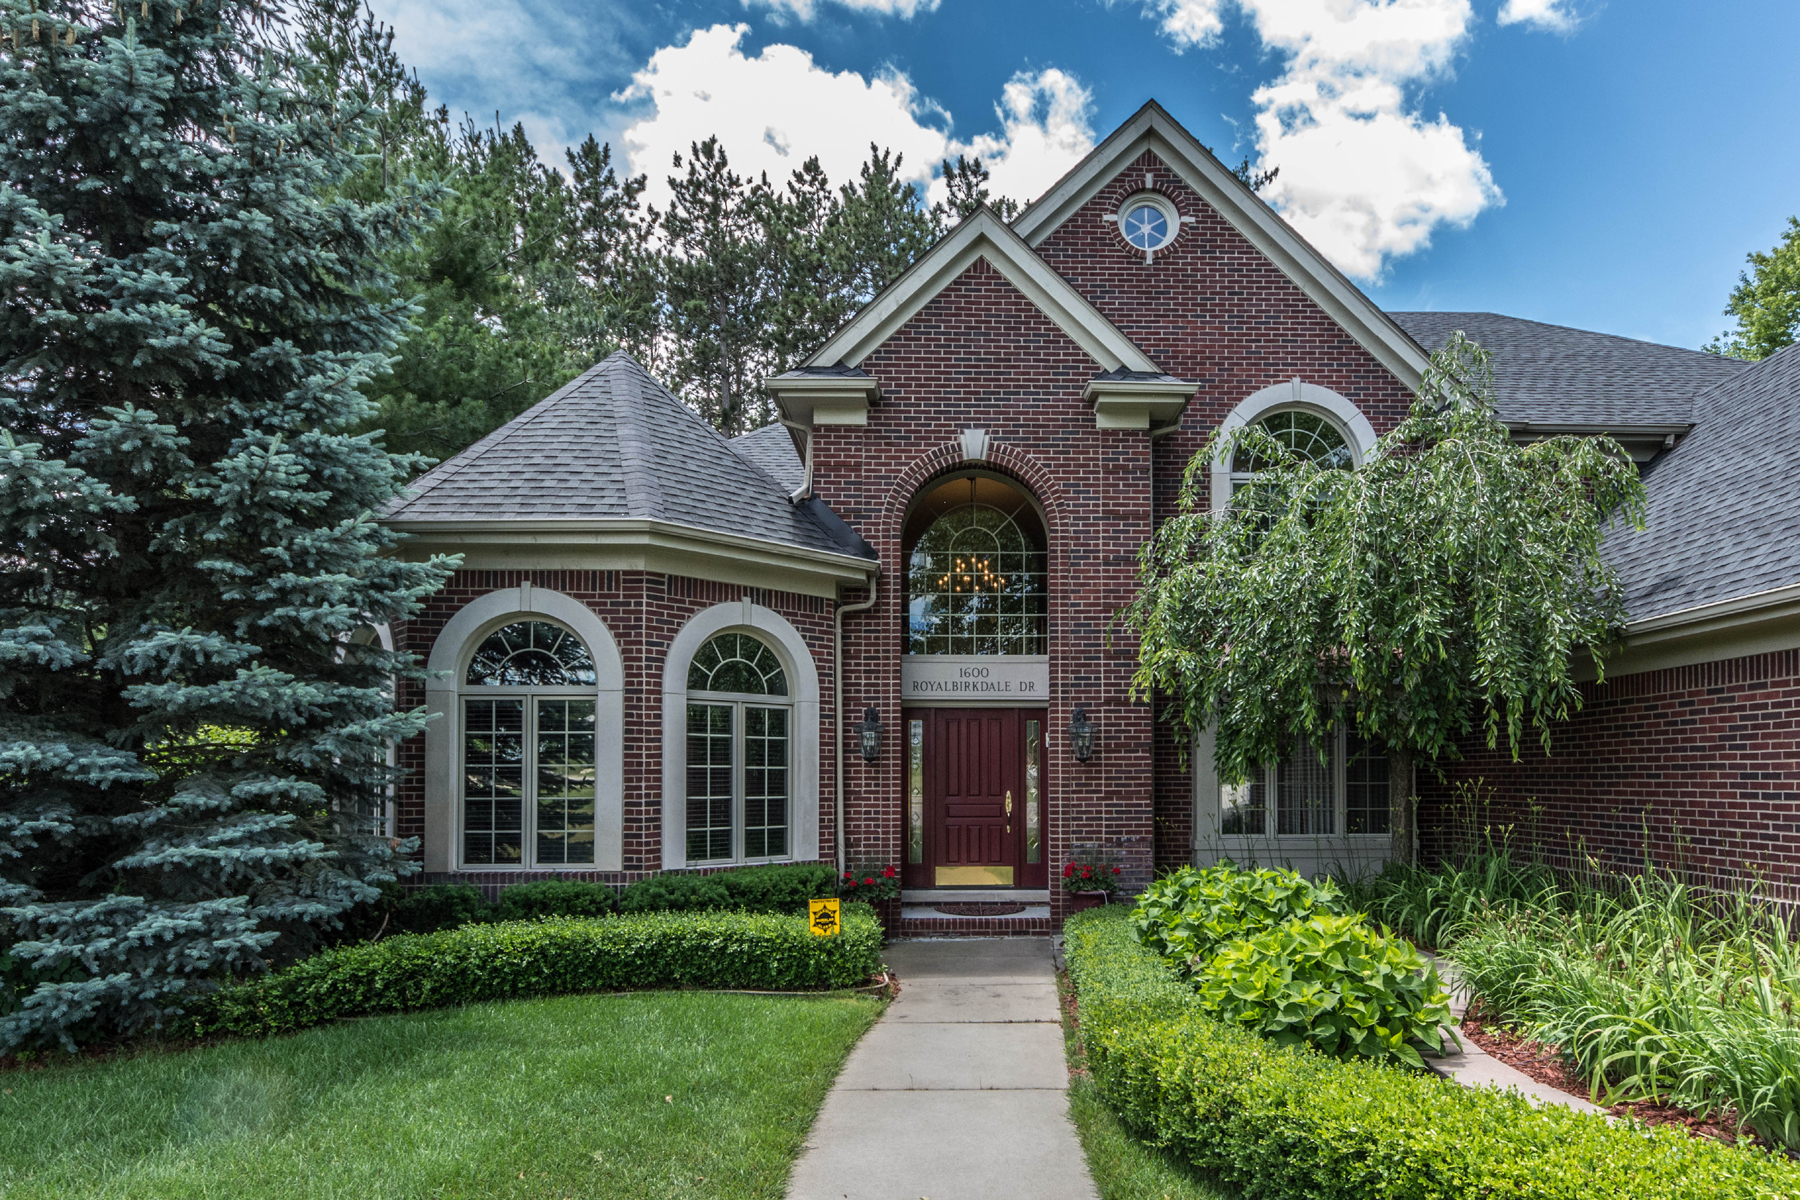 Single Family Home for Sale at Oxford Township 1600 Royal Birkdale Oxford, Michigan, 48371 United States